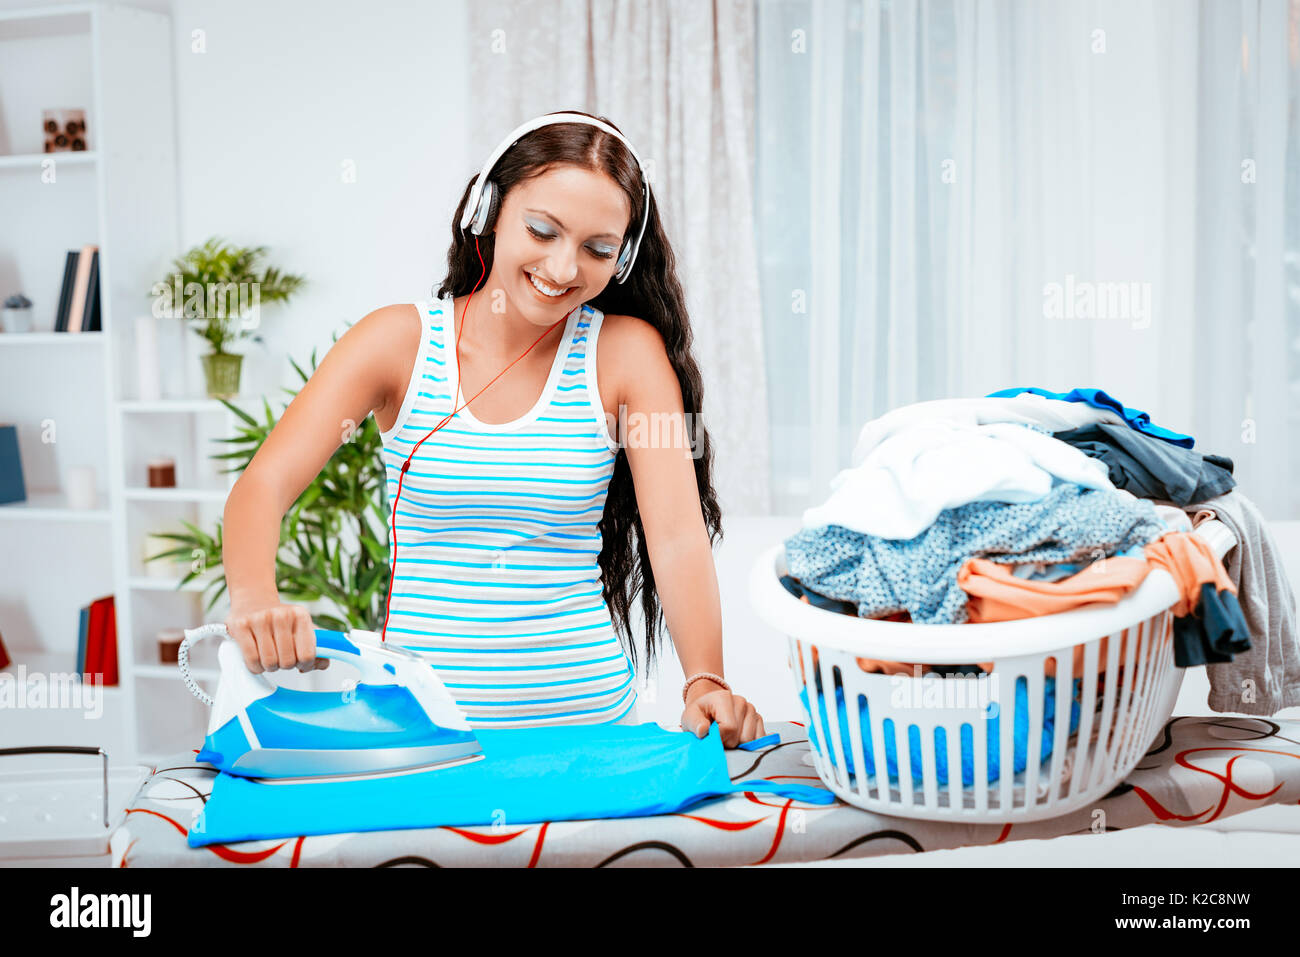 Young beautiful smiling woman ironing clothes and listening music on headphones. - Stock Image